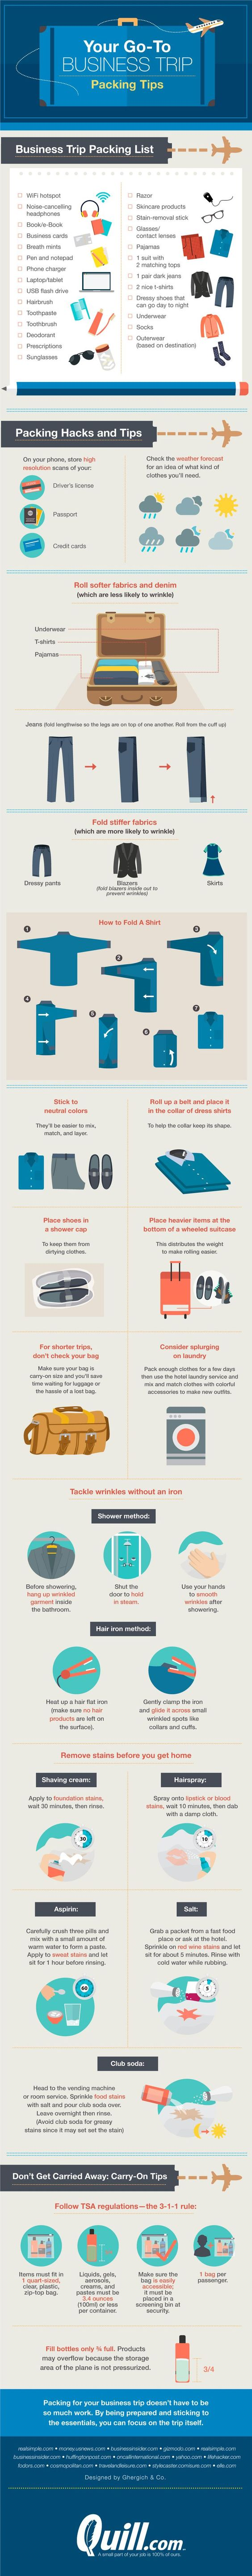 Your Go-To Business Trip Packing Tips #Infographic #Business #Travel